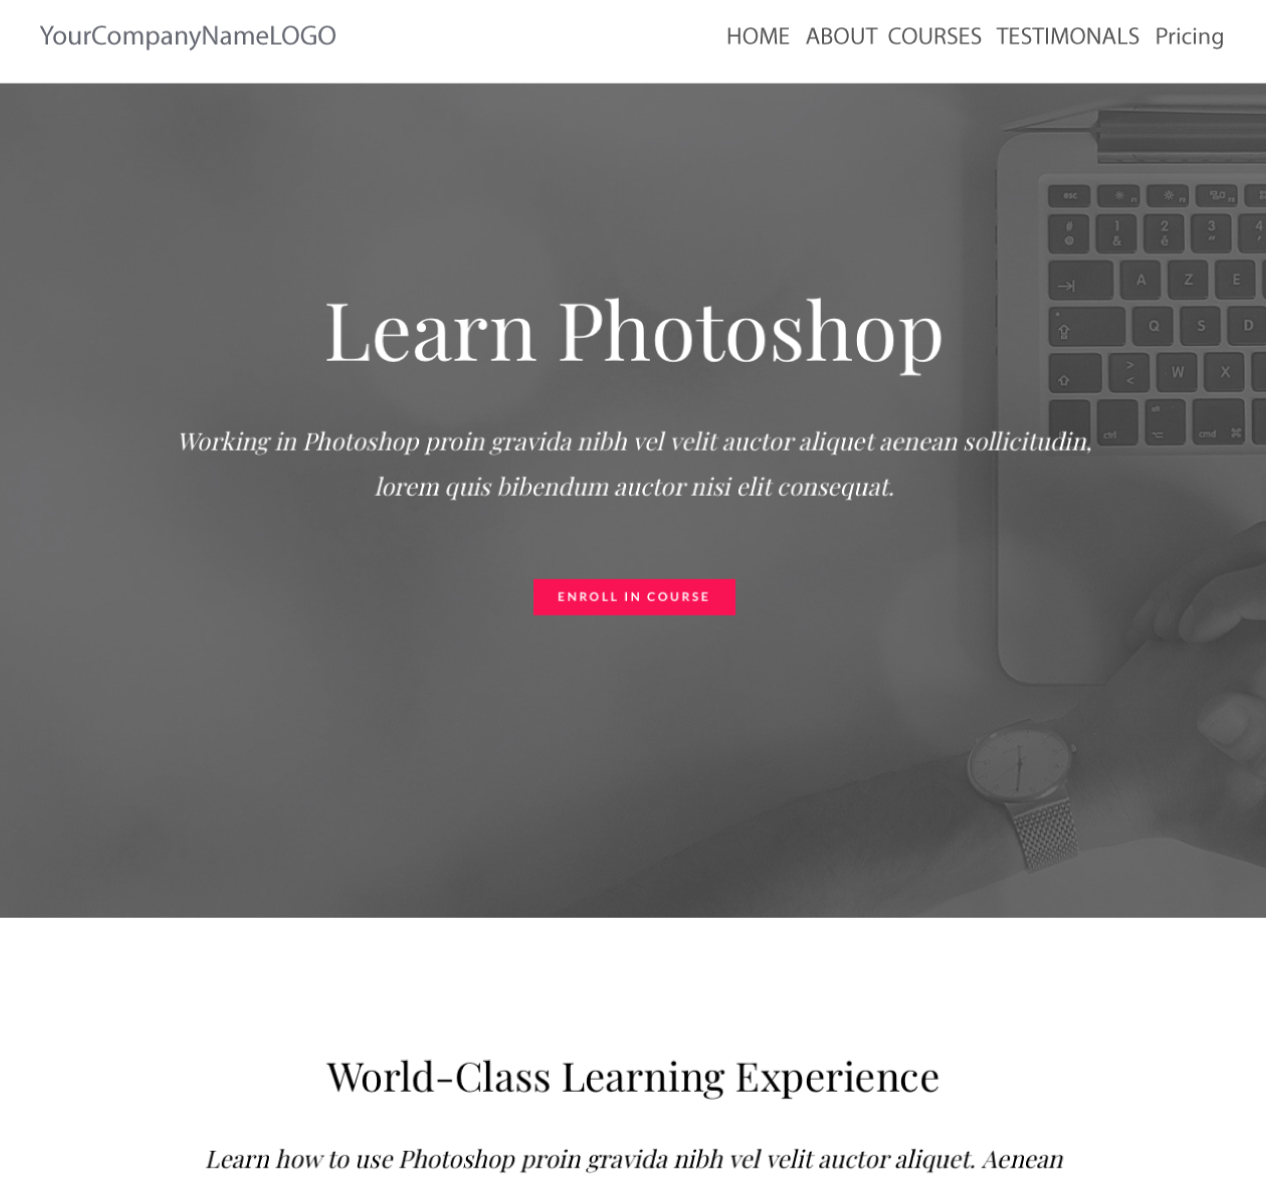 An Image of a new Learn Photoshop training website design